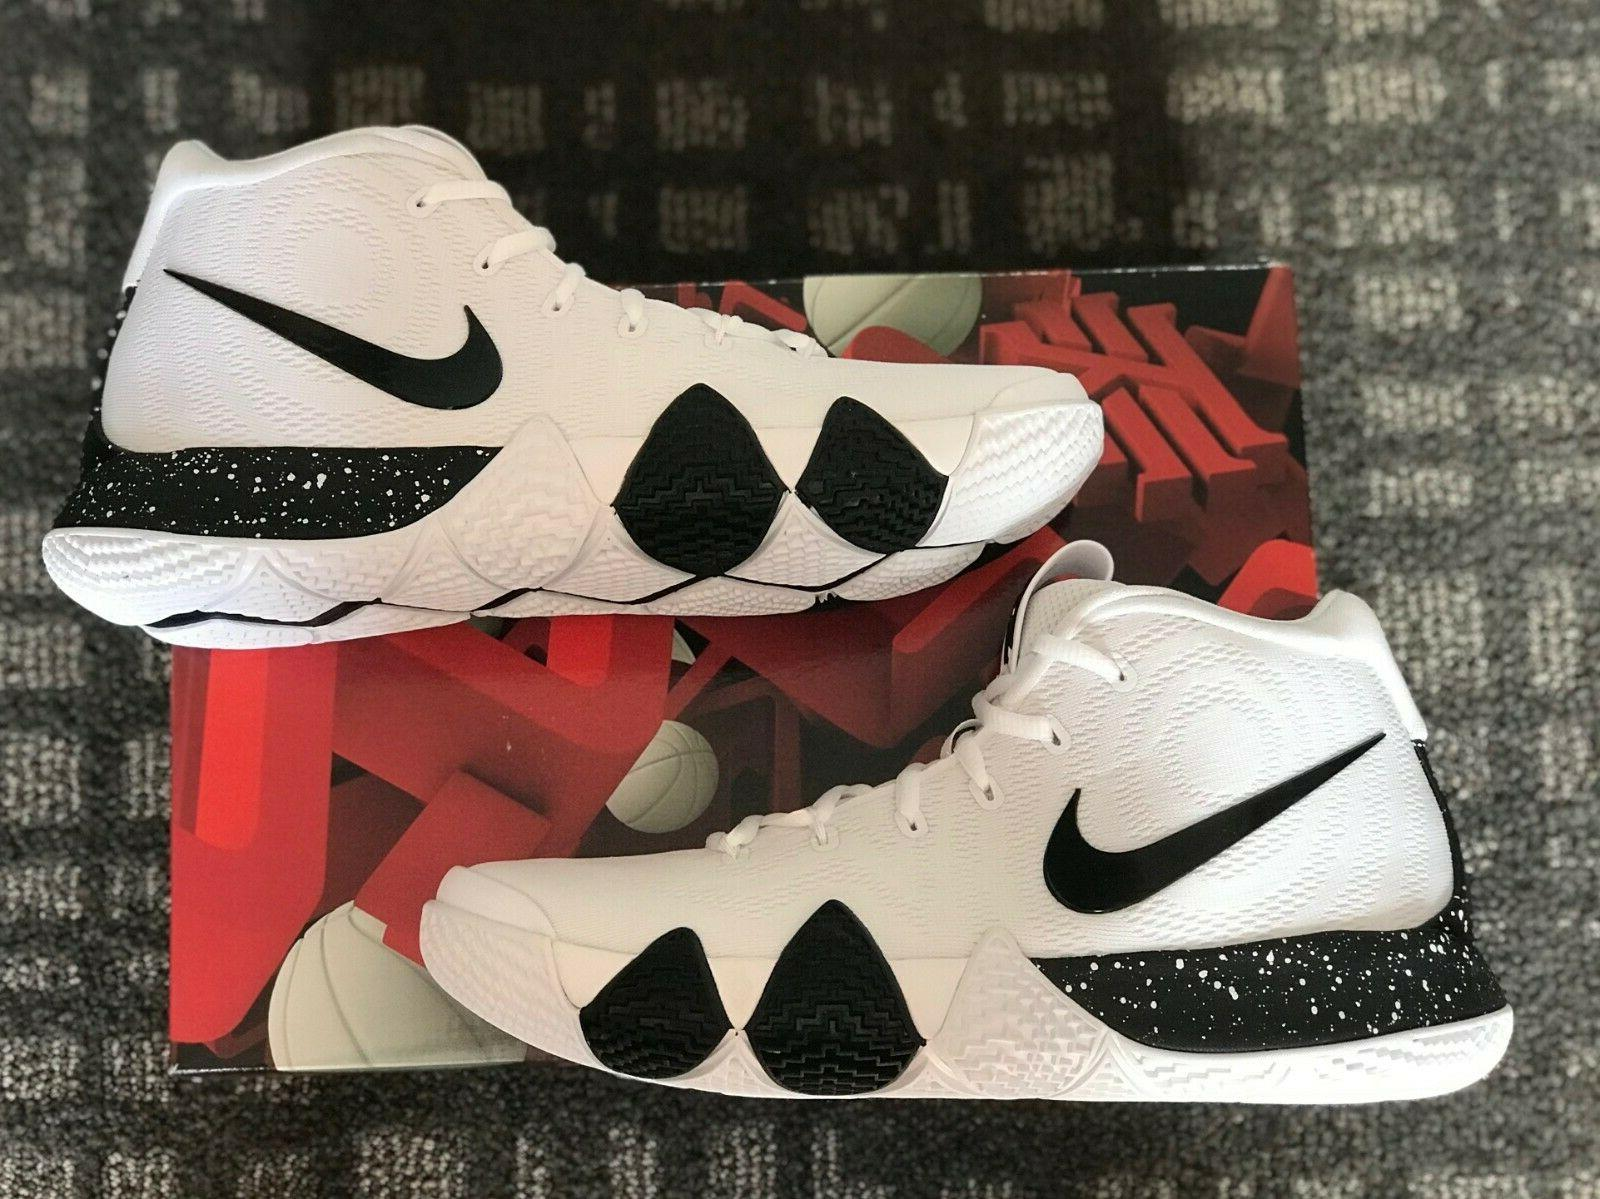 New TB Basketball Shoes White AV2296 Kobe Jordan